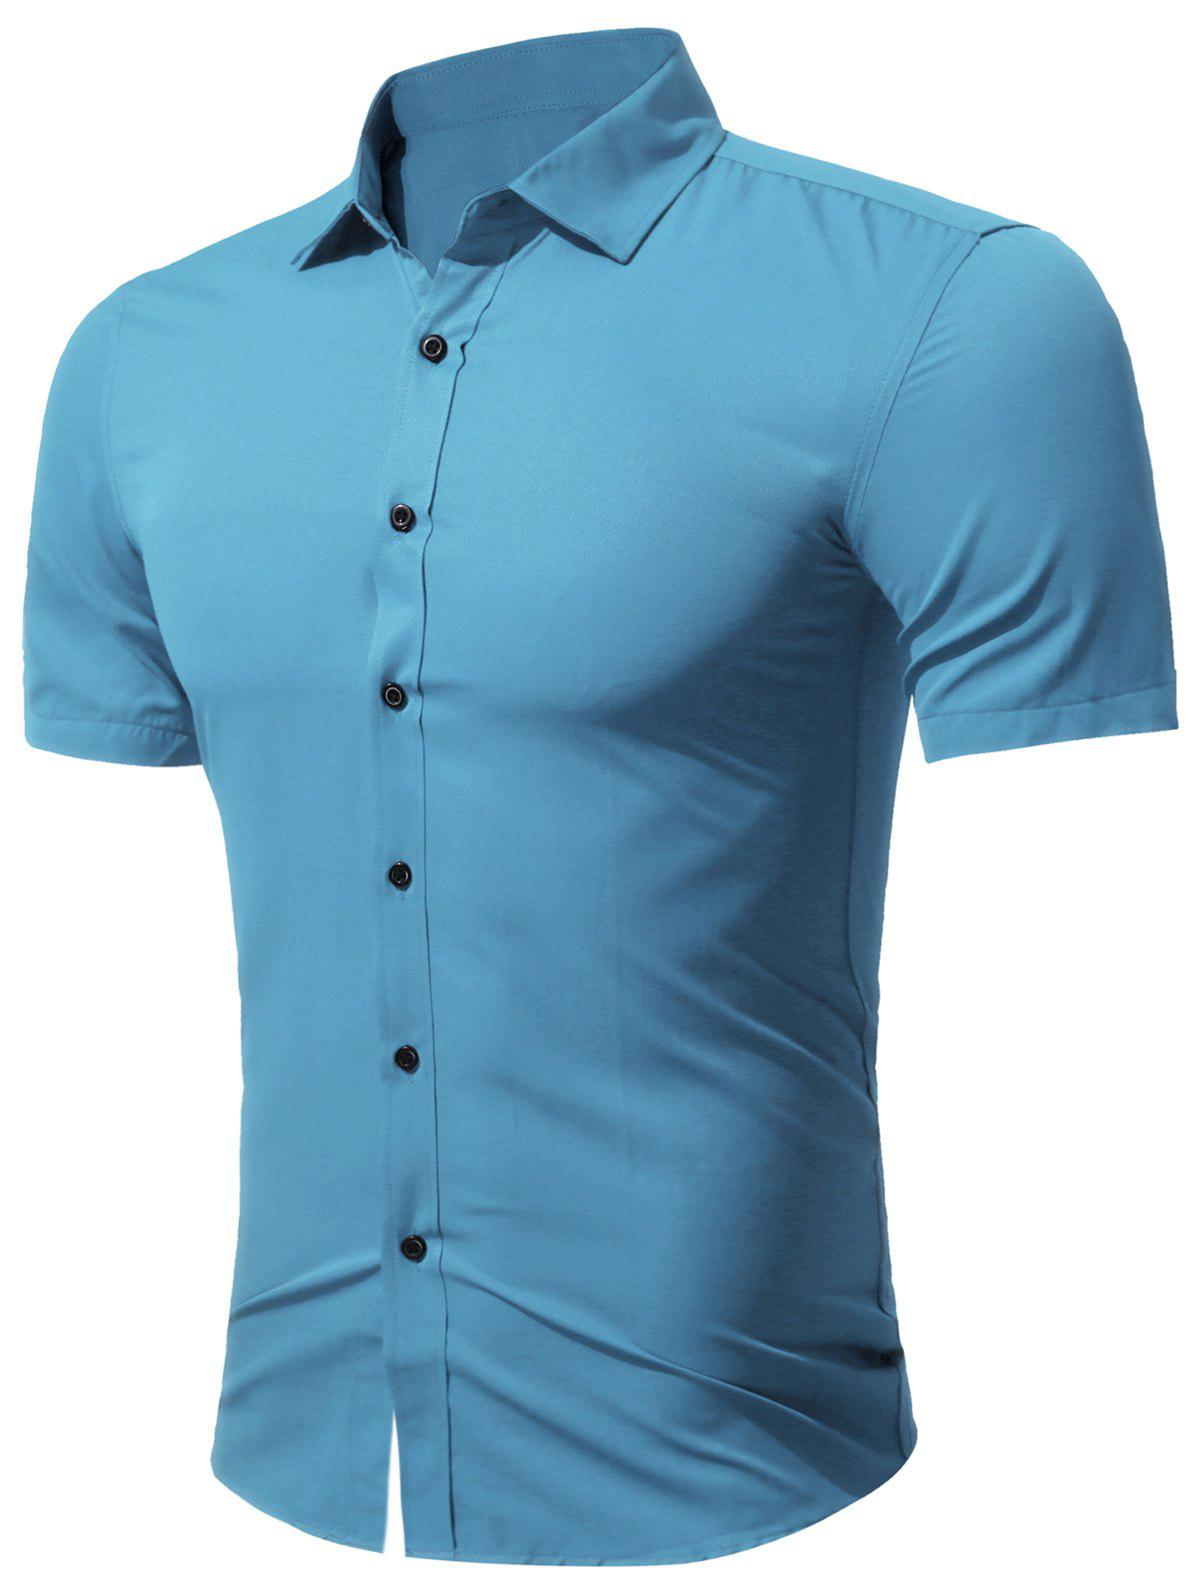 Image of Short Sleeve Business Shirt in Slim Fit